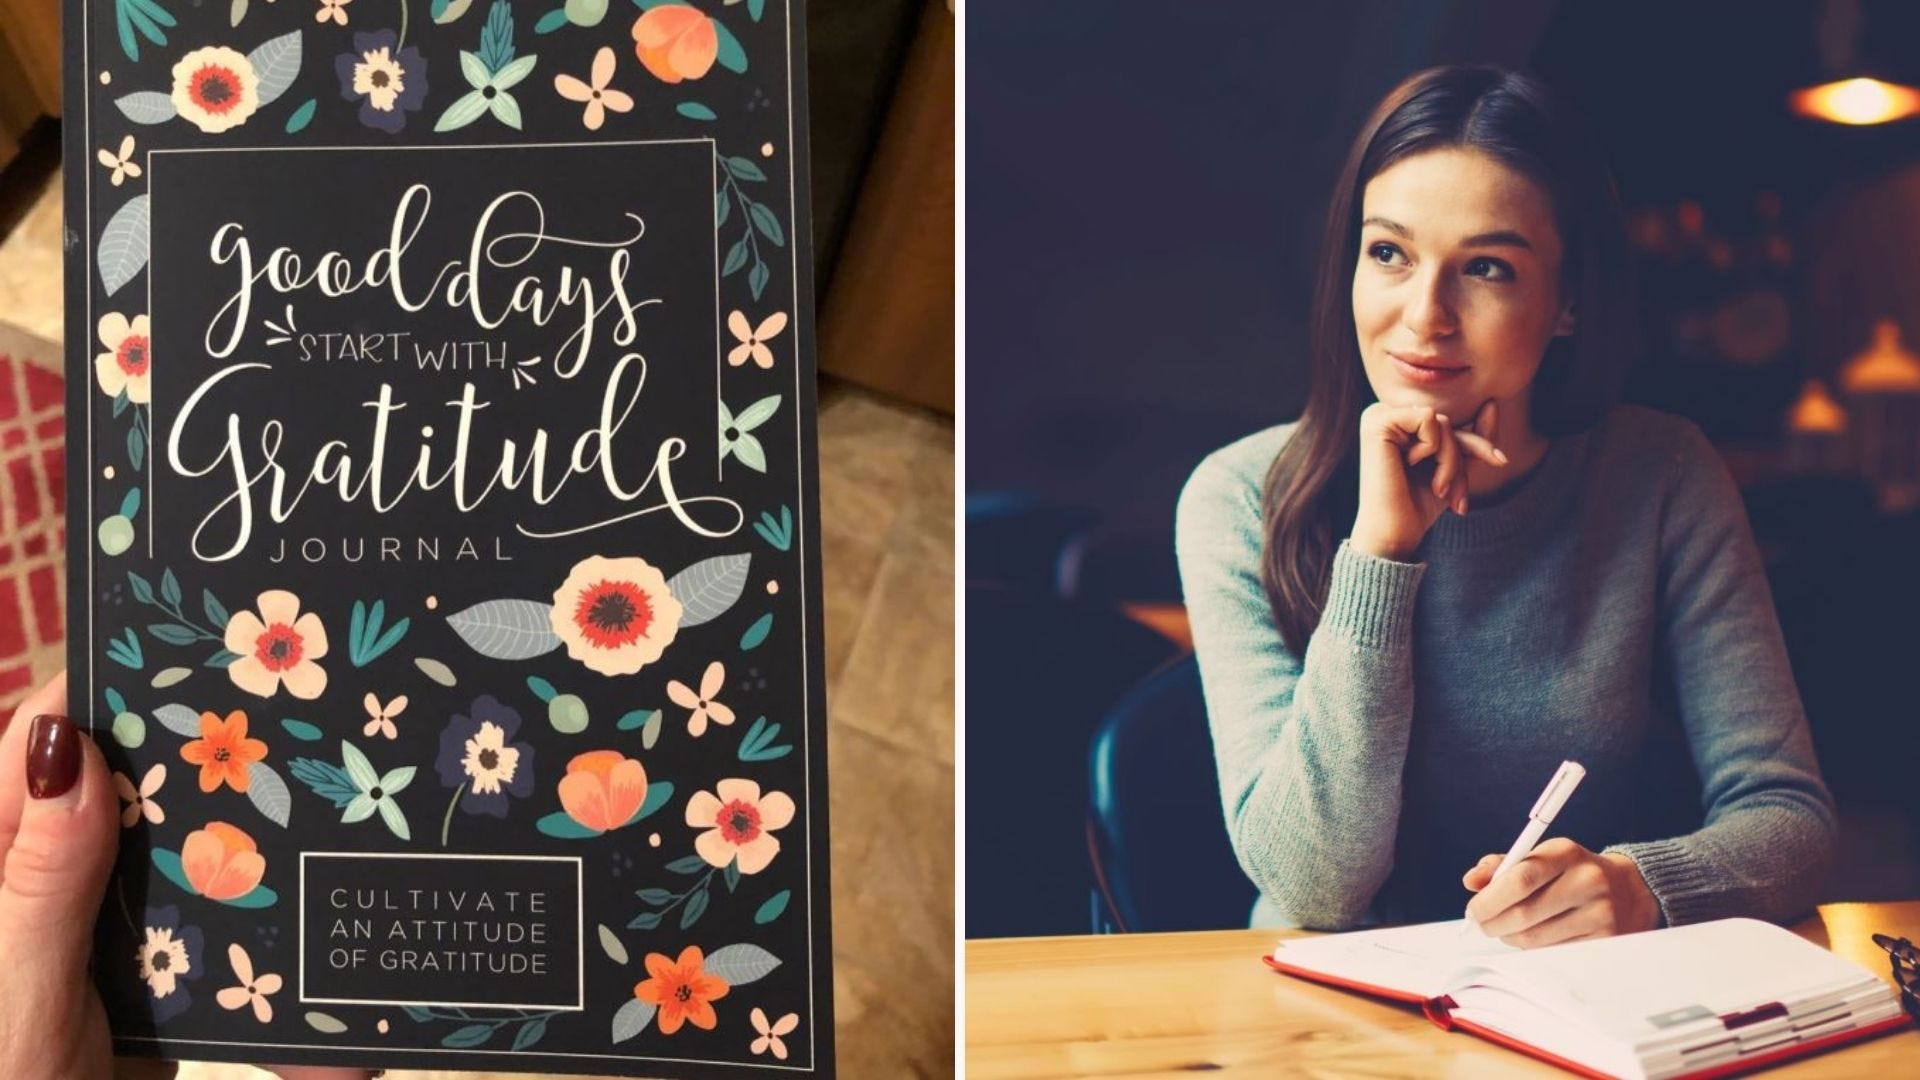 """Someone holding the """"Good Days Start with Gratitude Journal"""" and a woman writing in a journal at a pub."""